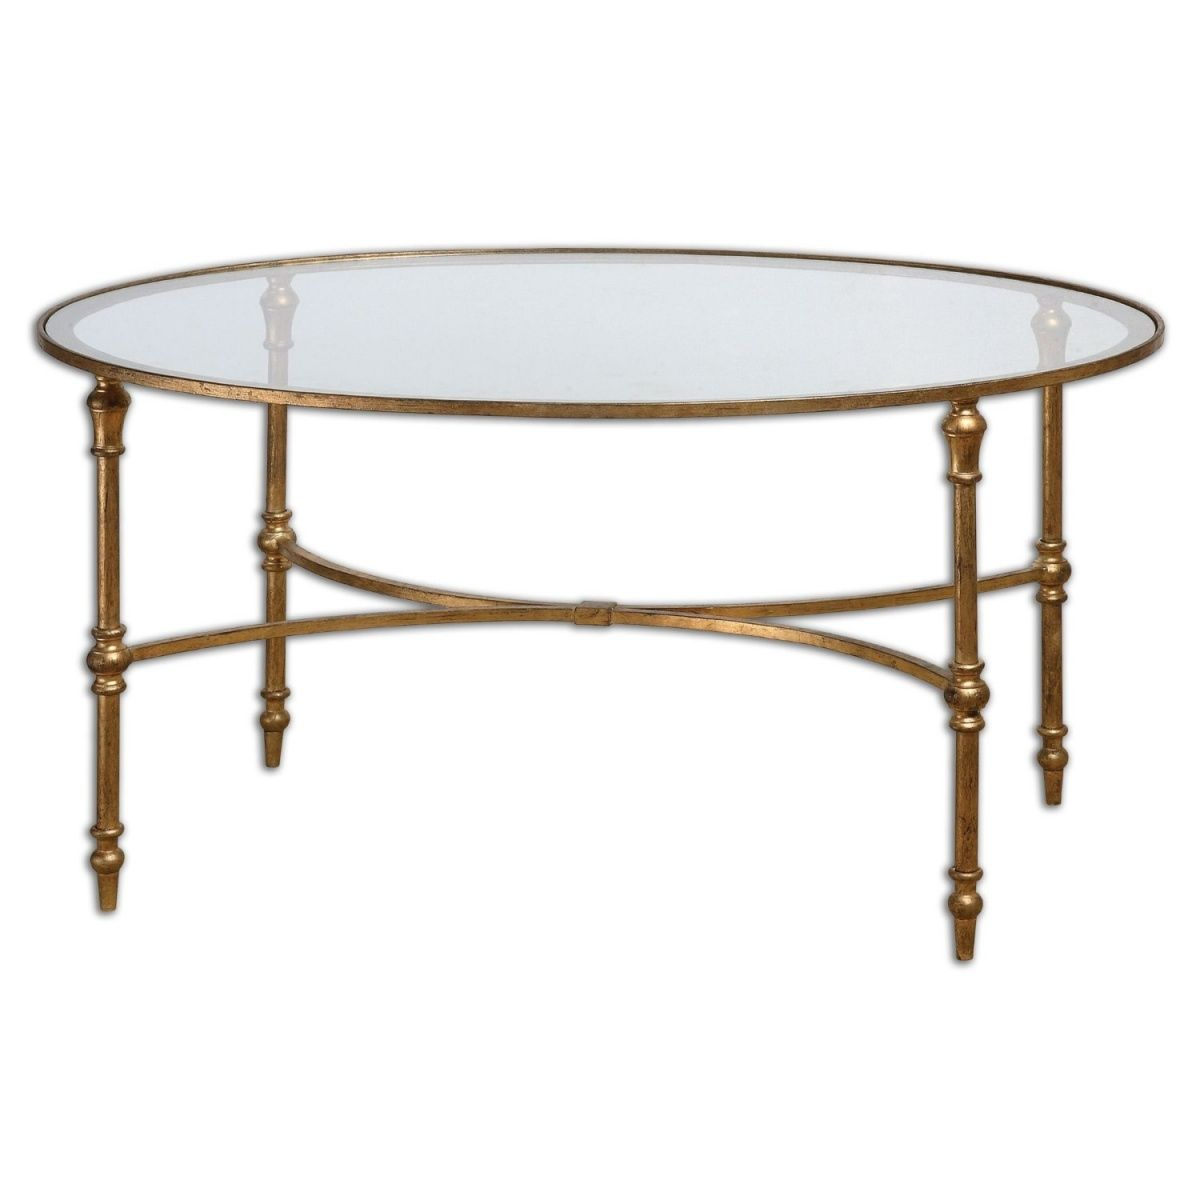 bamboo modern furniture. Gold Bamboo Glass Coffee Table - Contemporary Modern Furniture Check More At Http://